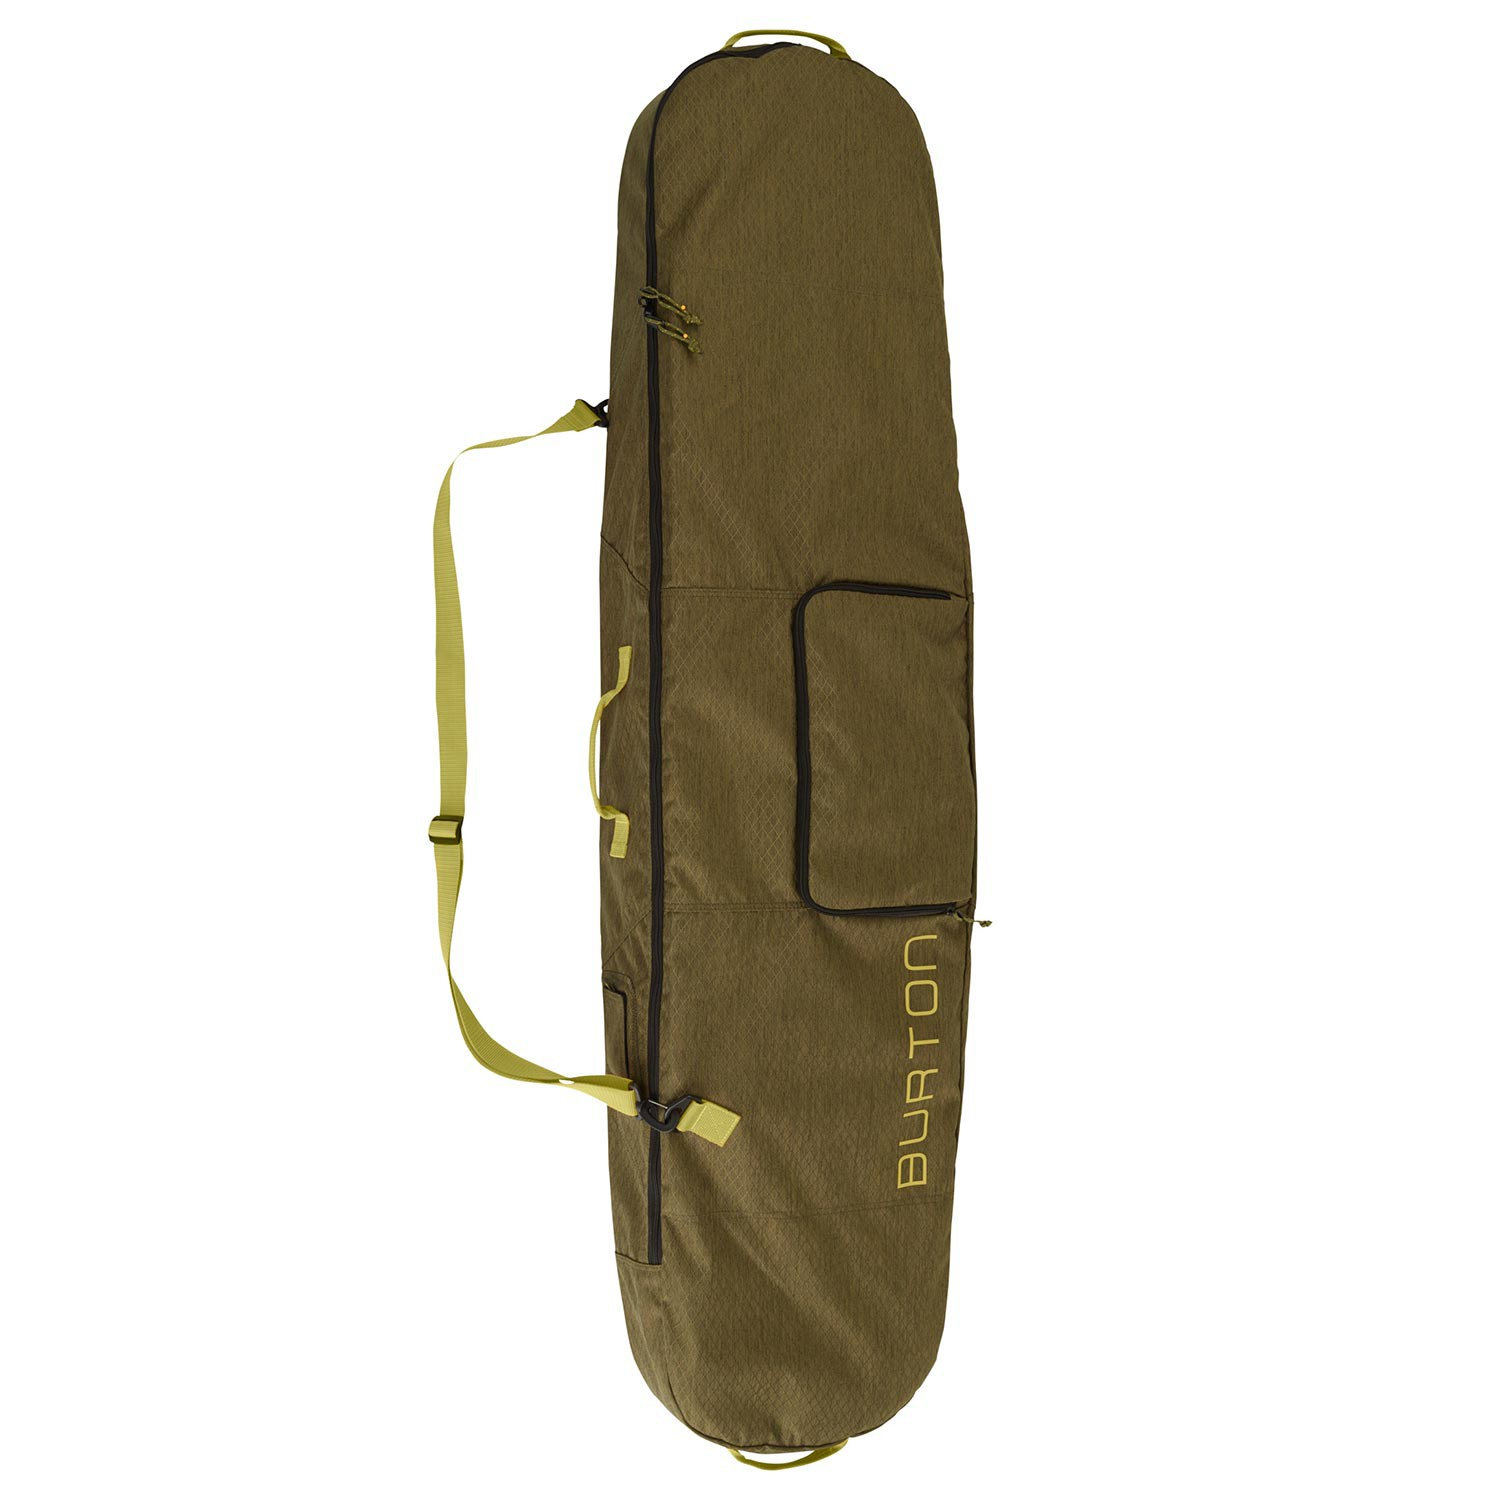 Obal na snowboard Burton Board Sack jungle